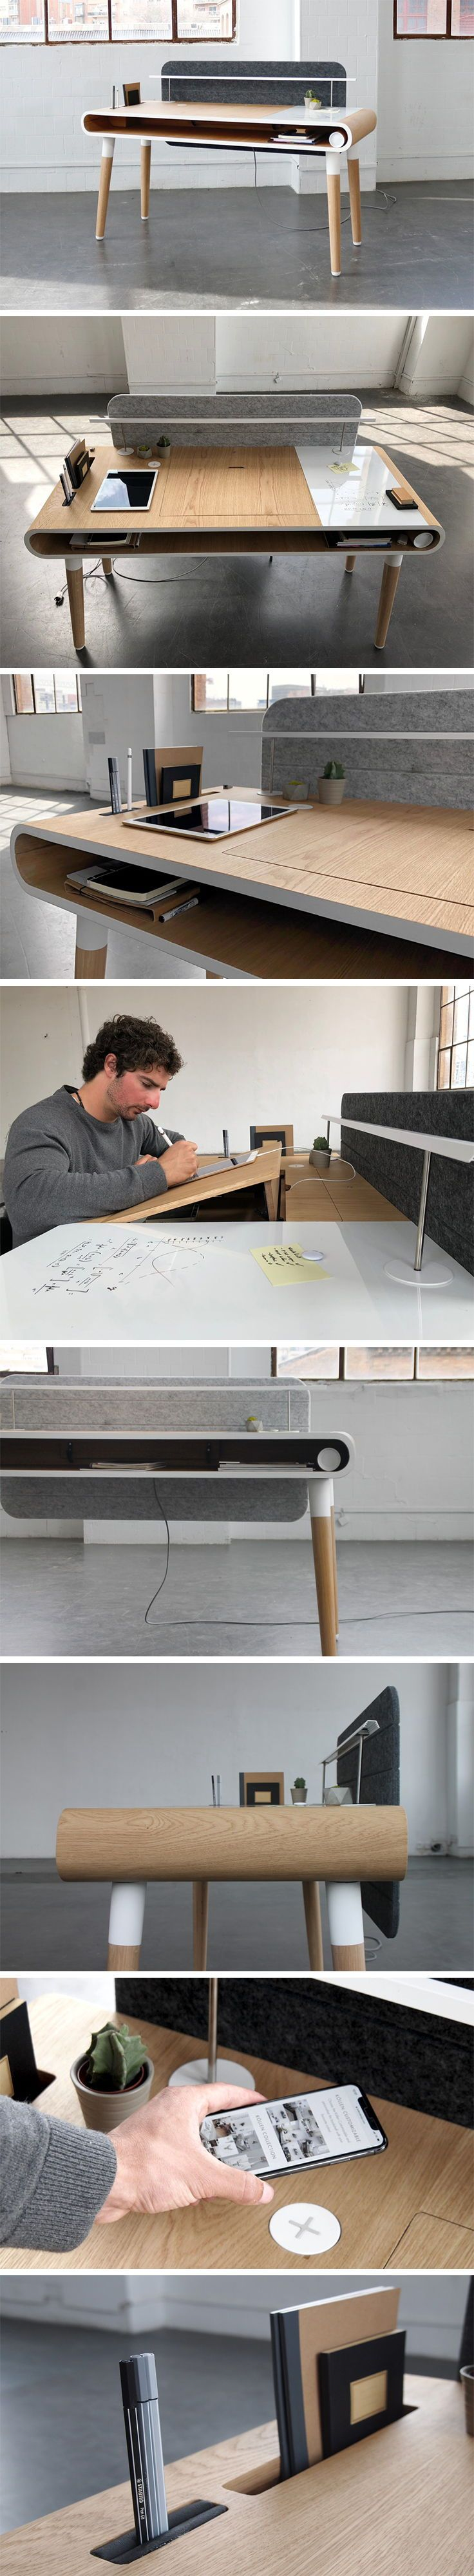 The Köllen E desk designed by Paula Terra Bosch encourages interaction from the user and allows them to configure a workspace that creates a